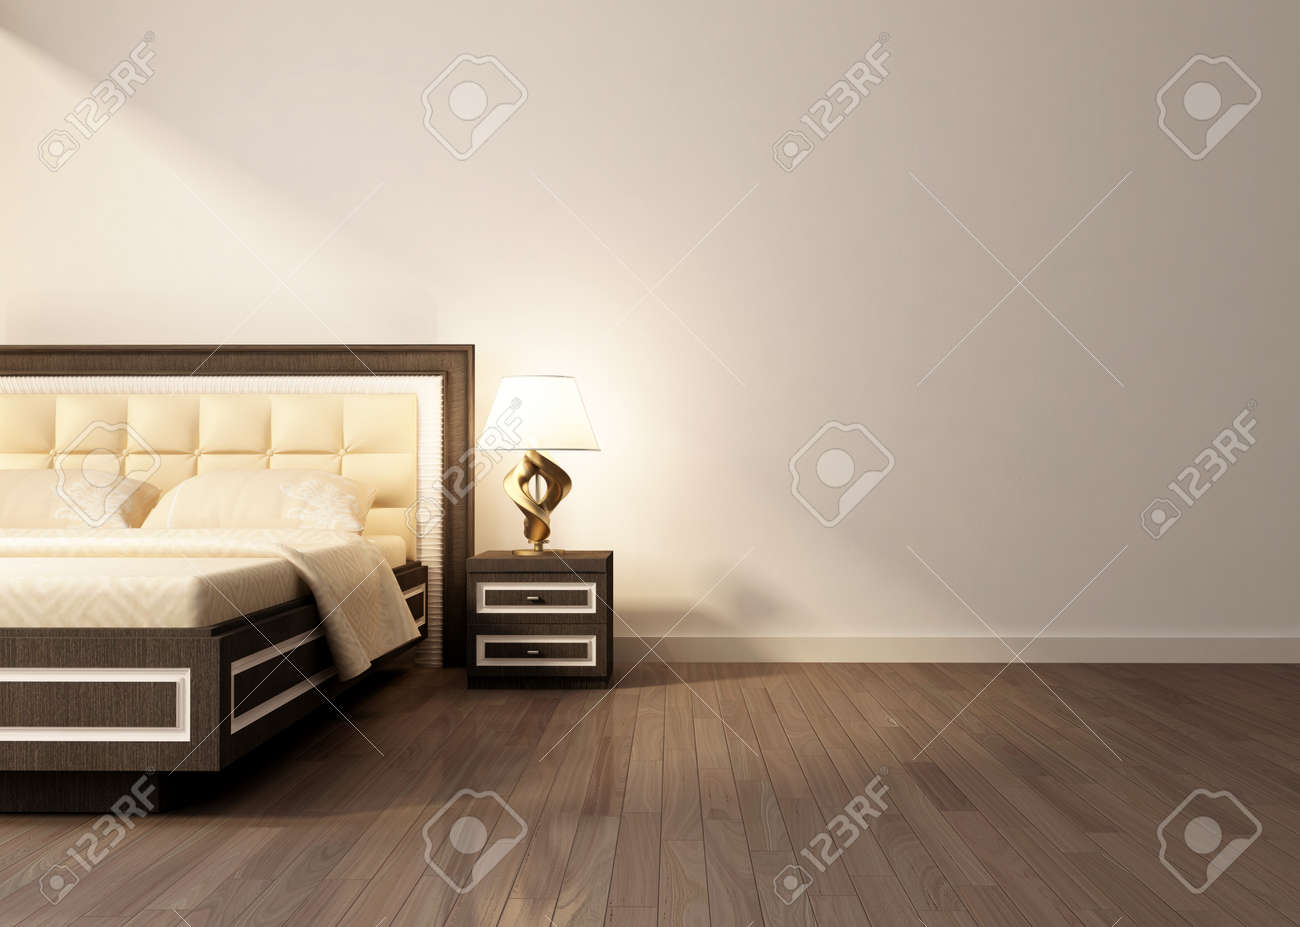 Modern Interior Room With King Size Bad. 3D Rendering Stock Photo   37461261